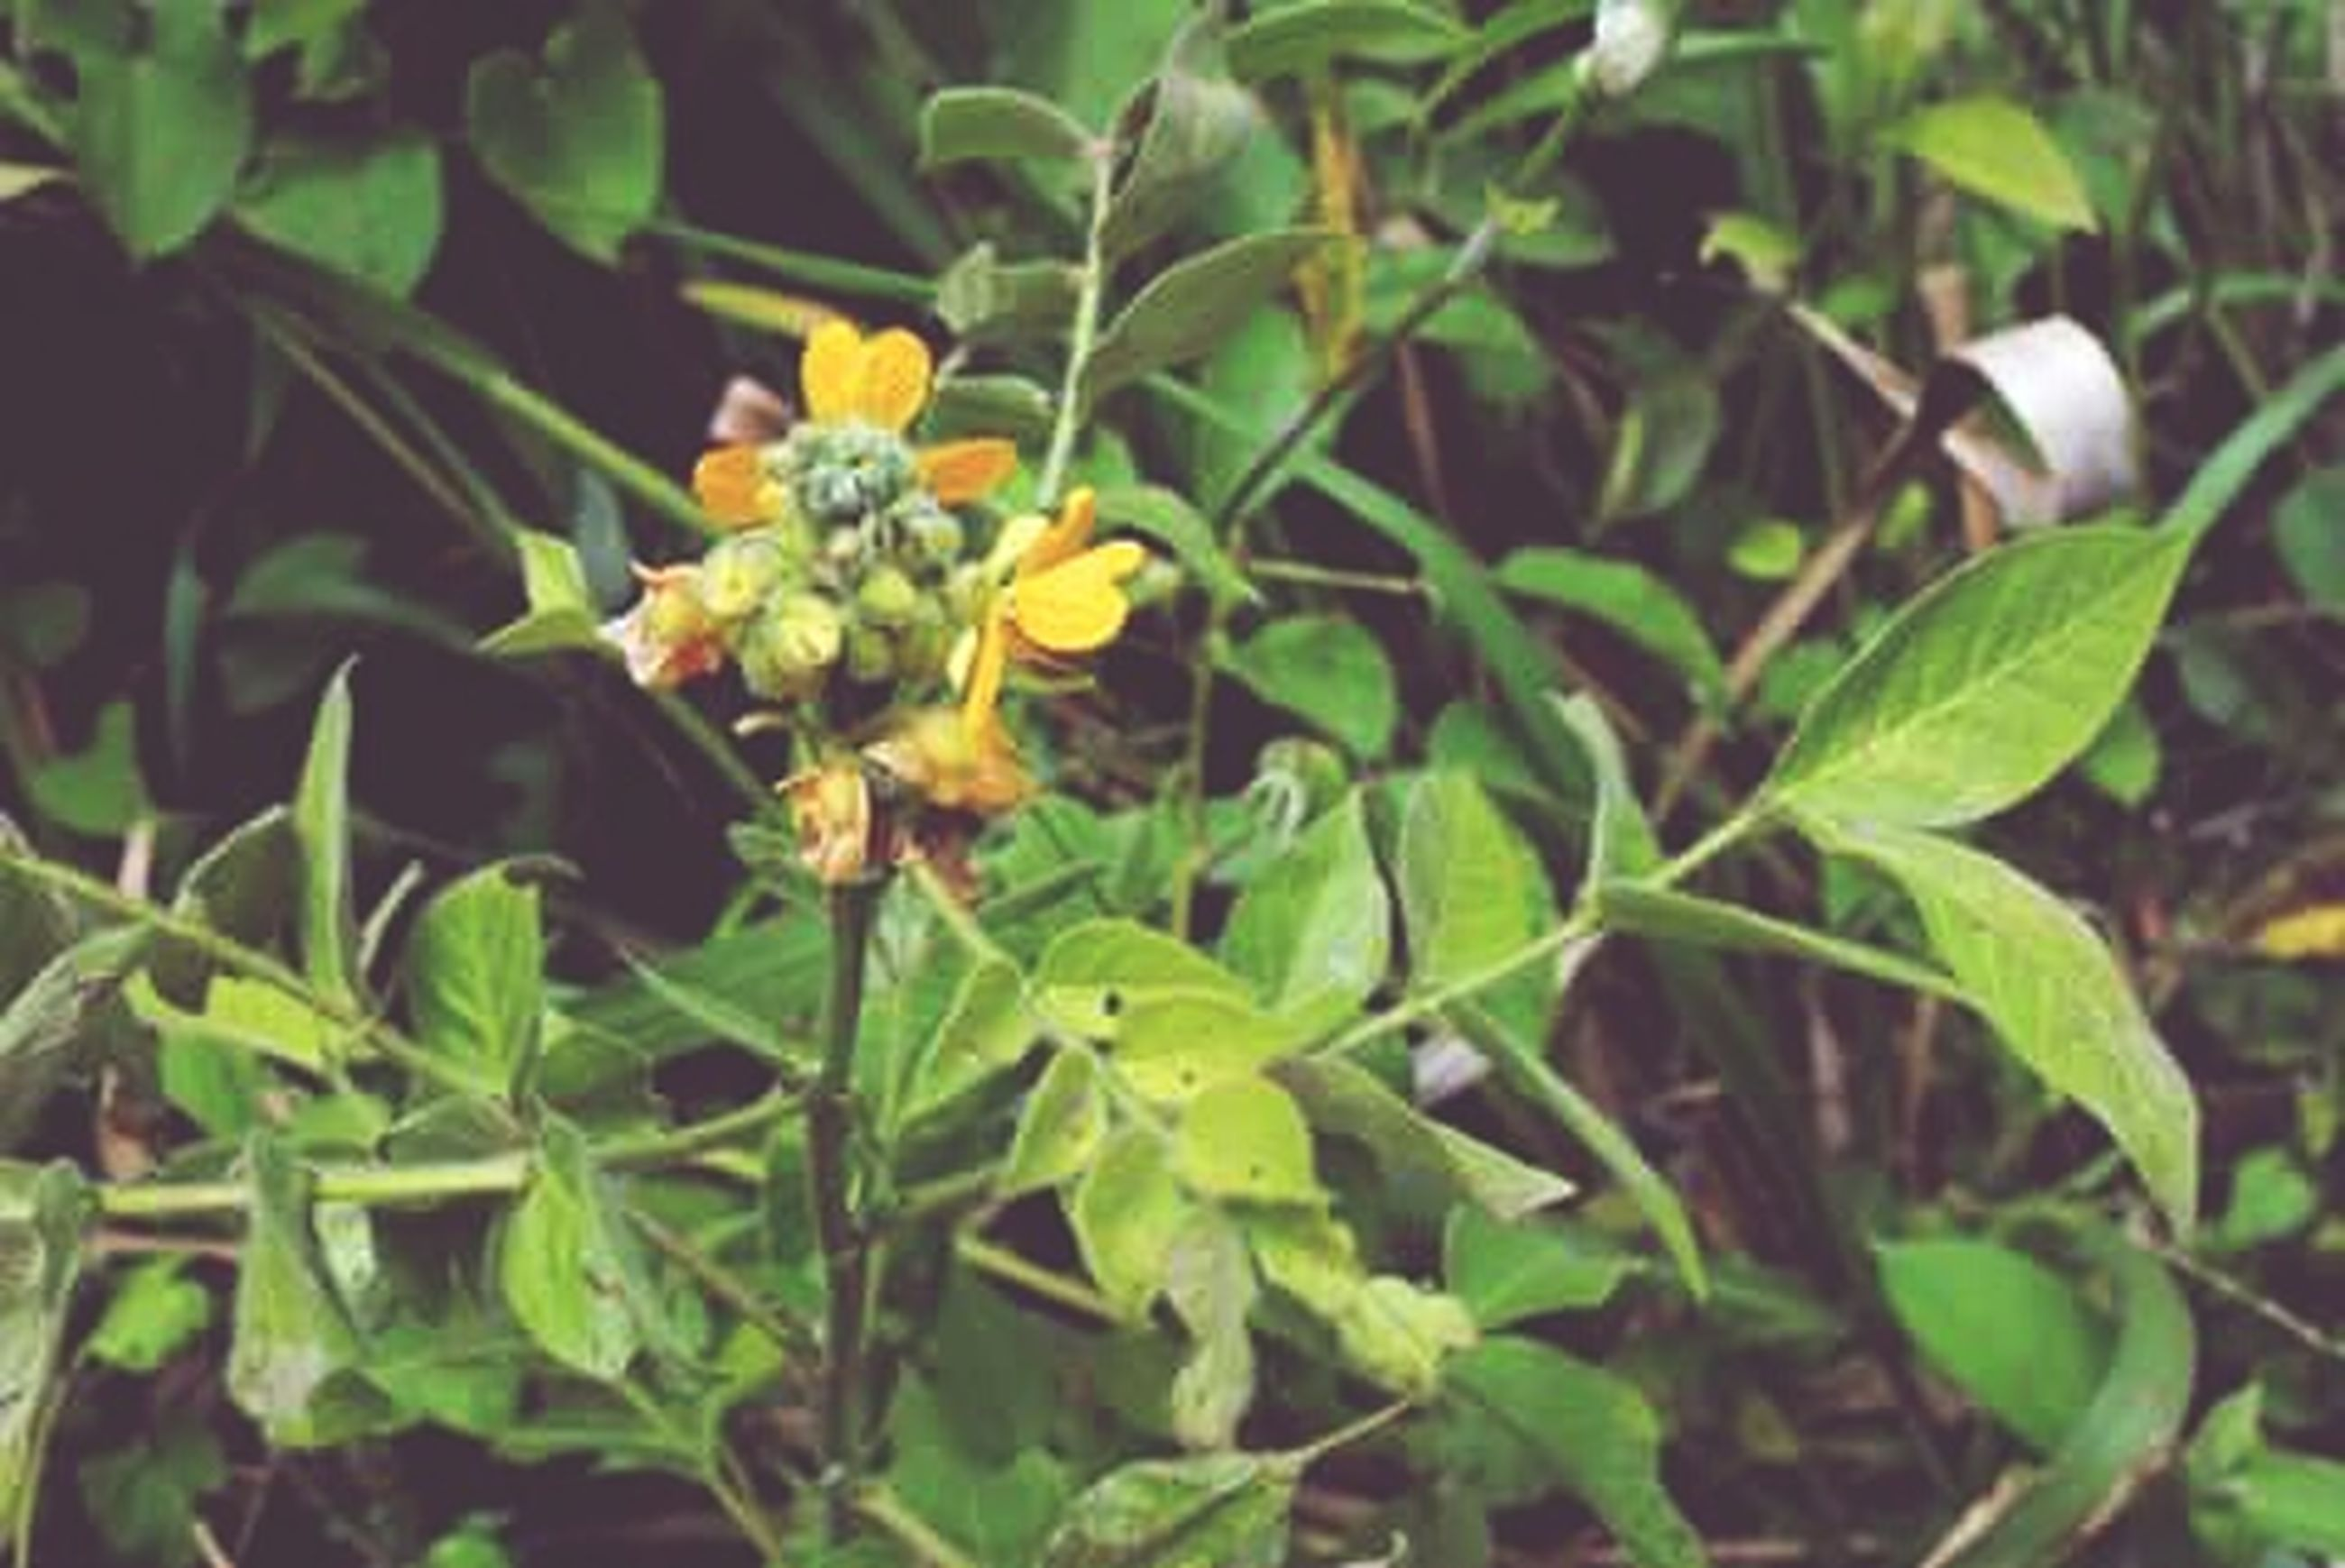 growth, freshness, leaf, flower, plant, green color, nature, yellow, beauty in nature, close-up, growing, fragility, focus on foreground, bud, day, fruit, no people, outdoors, sunlight, stem